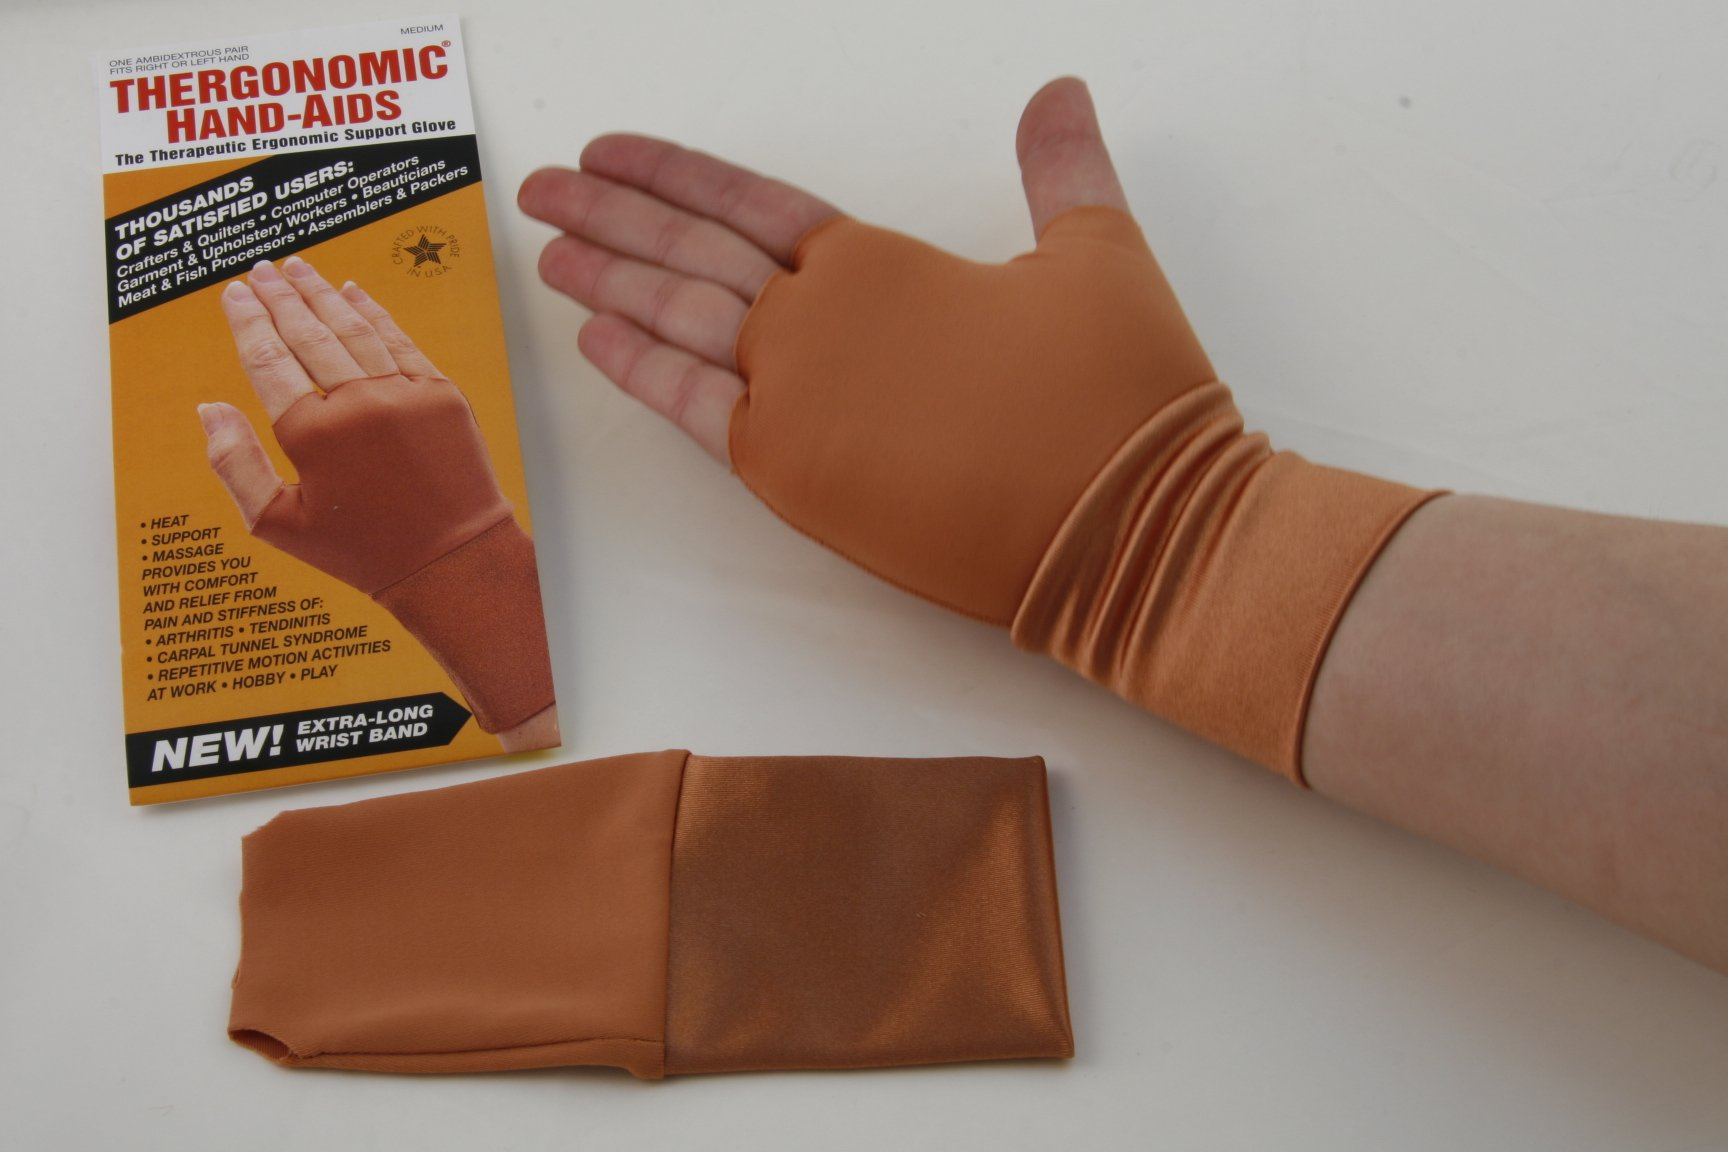 Thergonomic Hand Aids Gloves